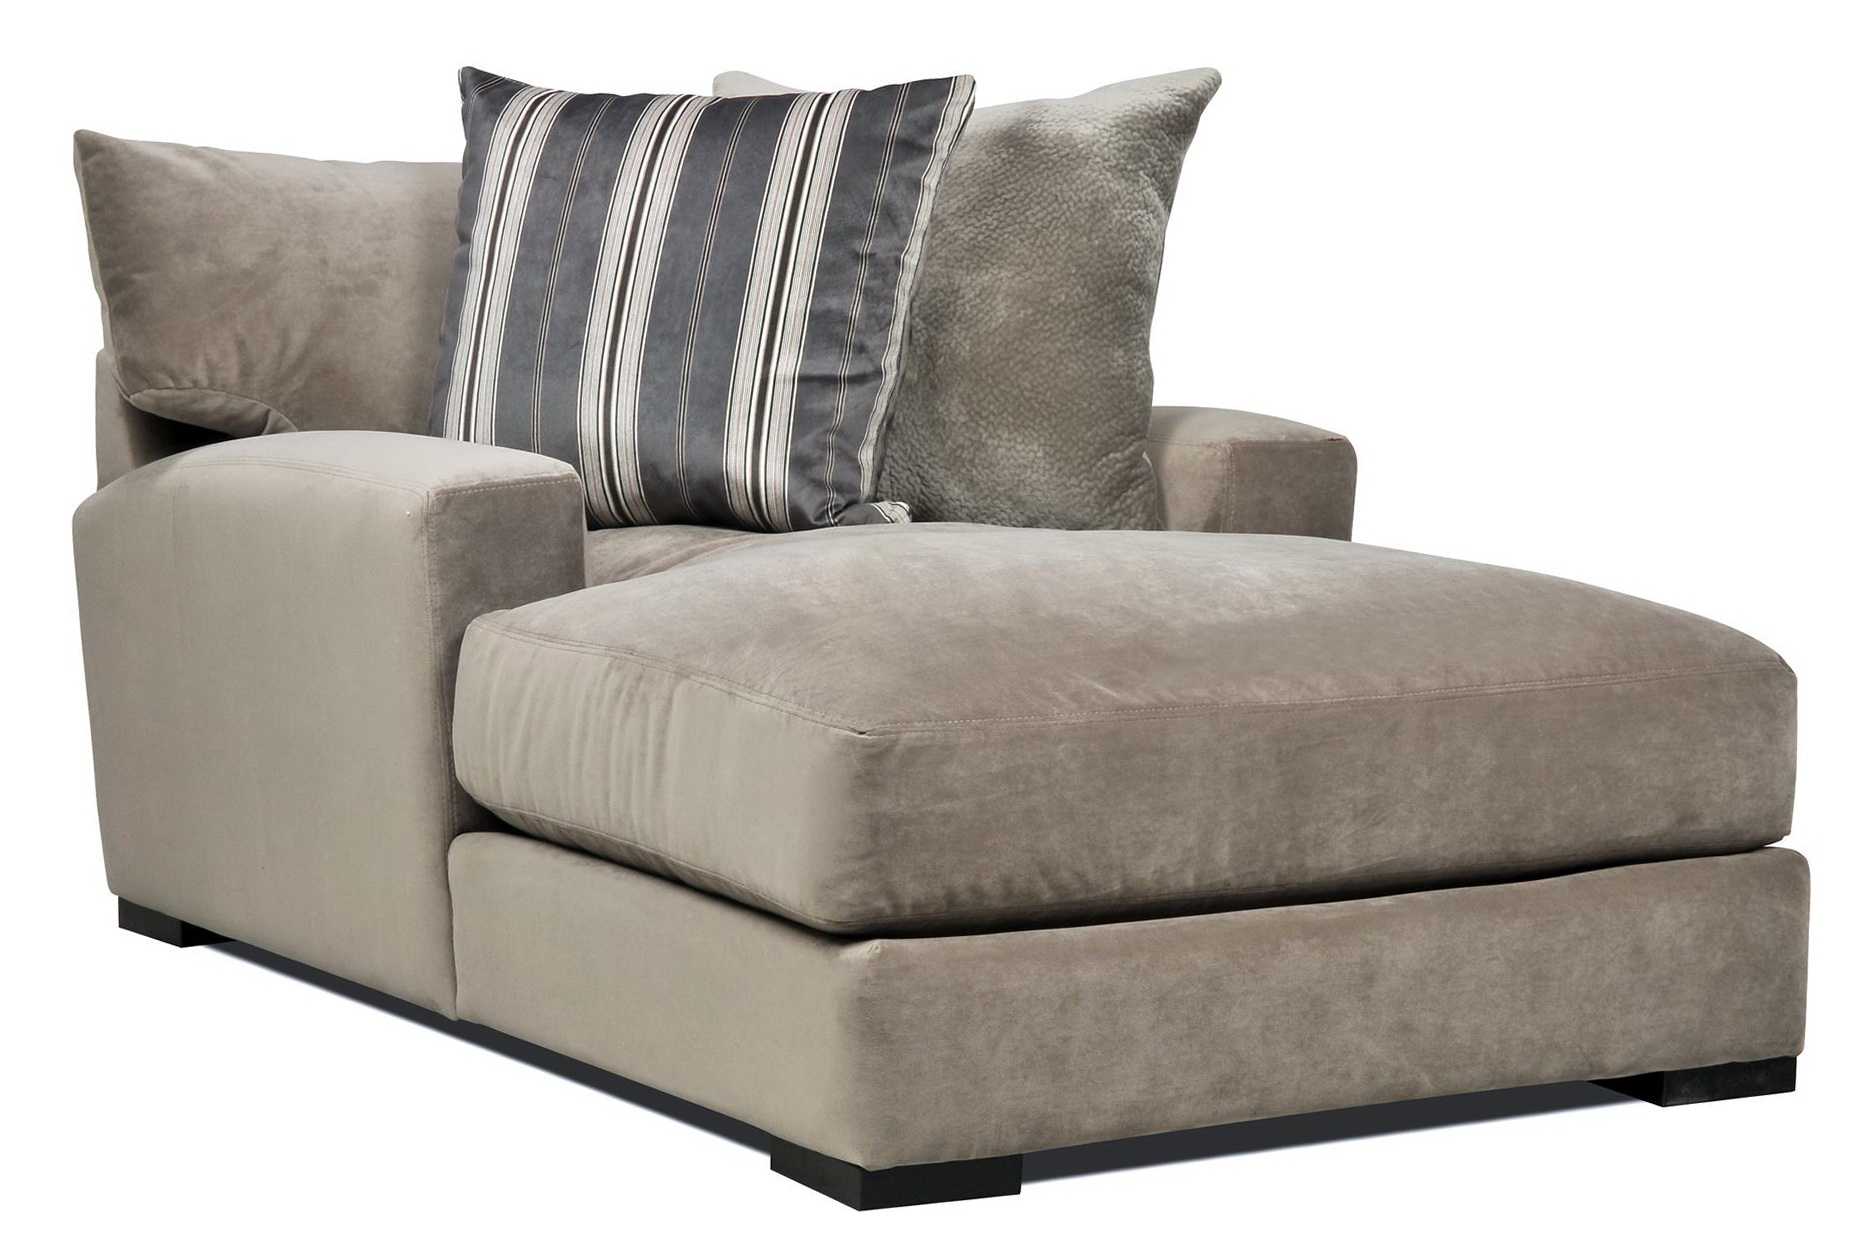 Double Wide Chaise Lounge Indoor With 2 Cushions (View 10 of 15)